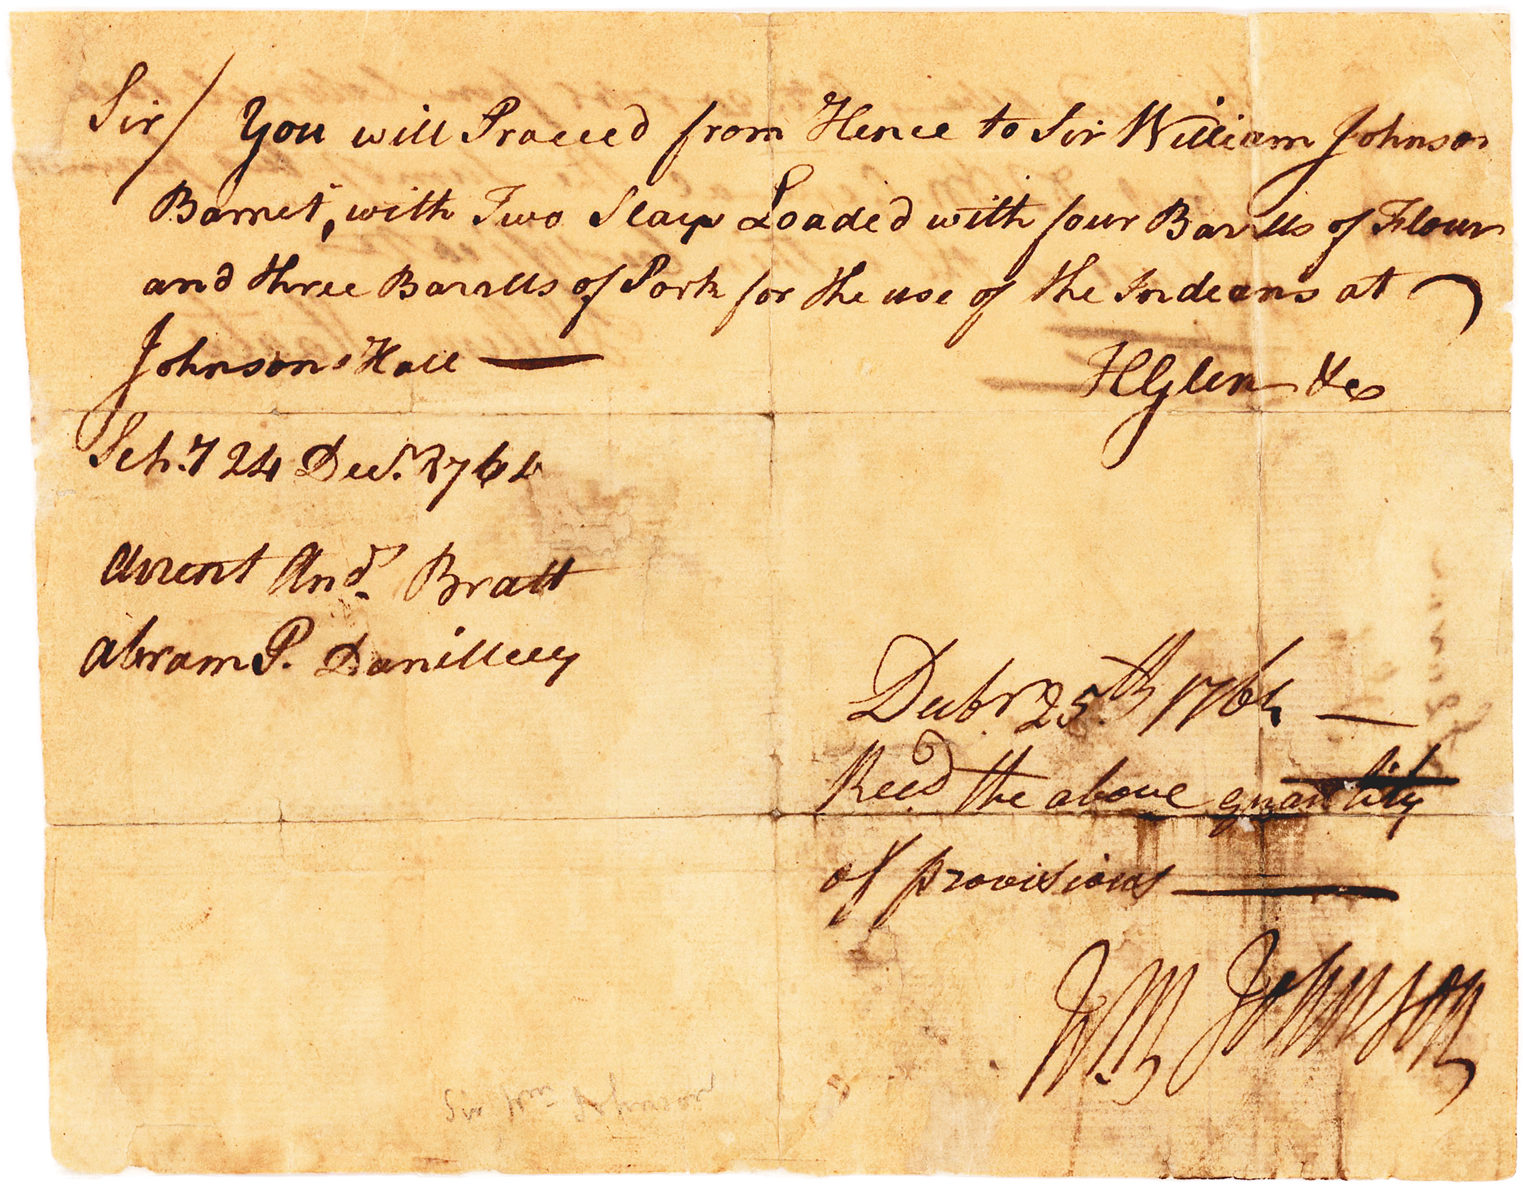 """Indian Agent and Founder of Johnstown, NY Acknowledges Receipt of supplies """"for the use of the Indians at Johnson Hall"""""""